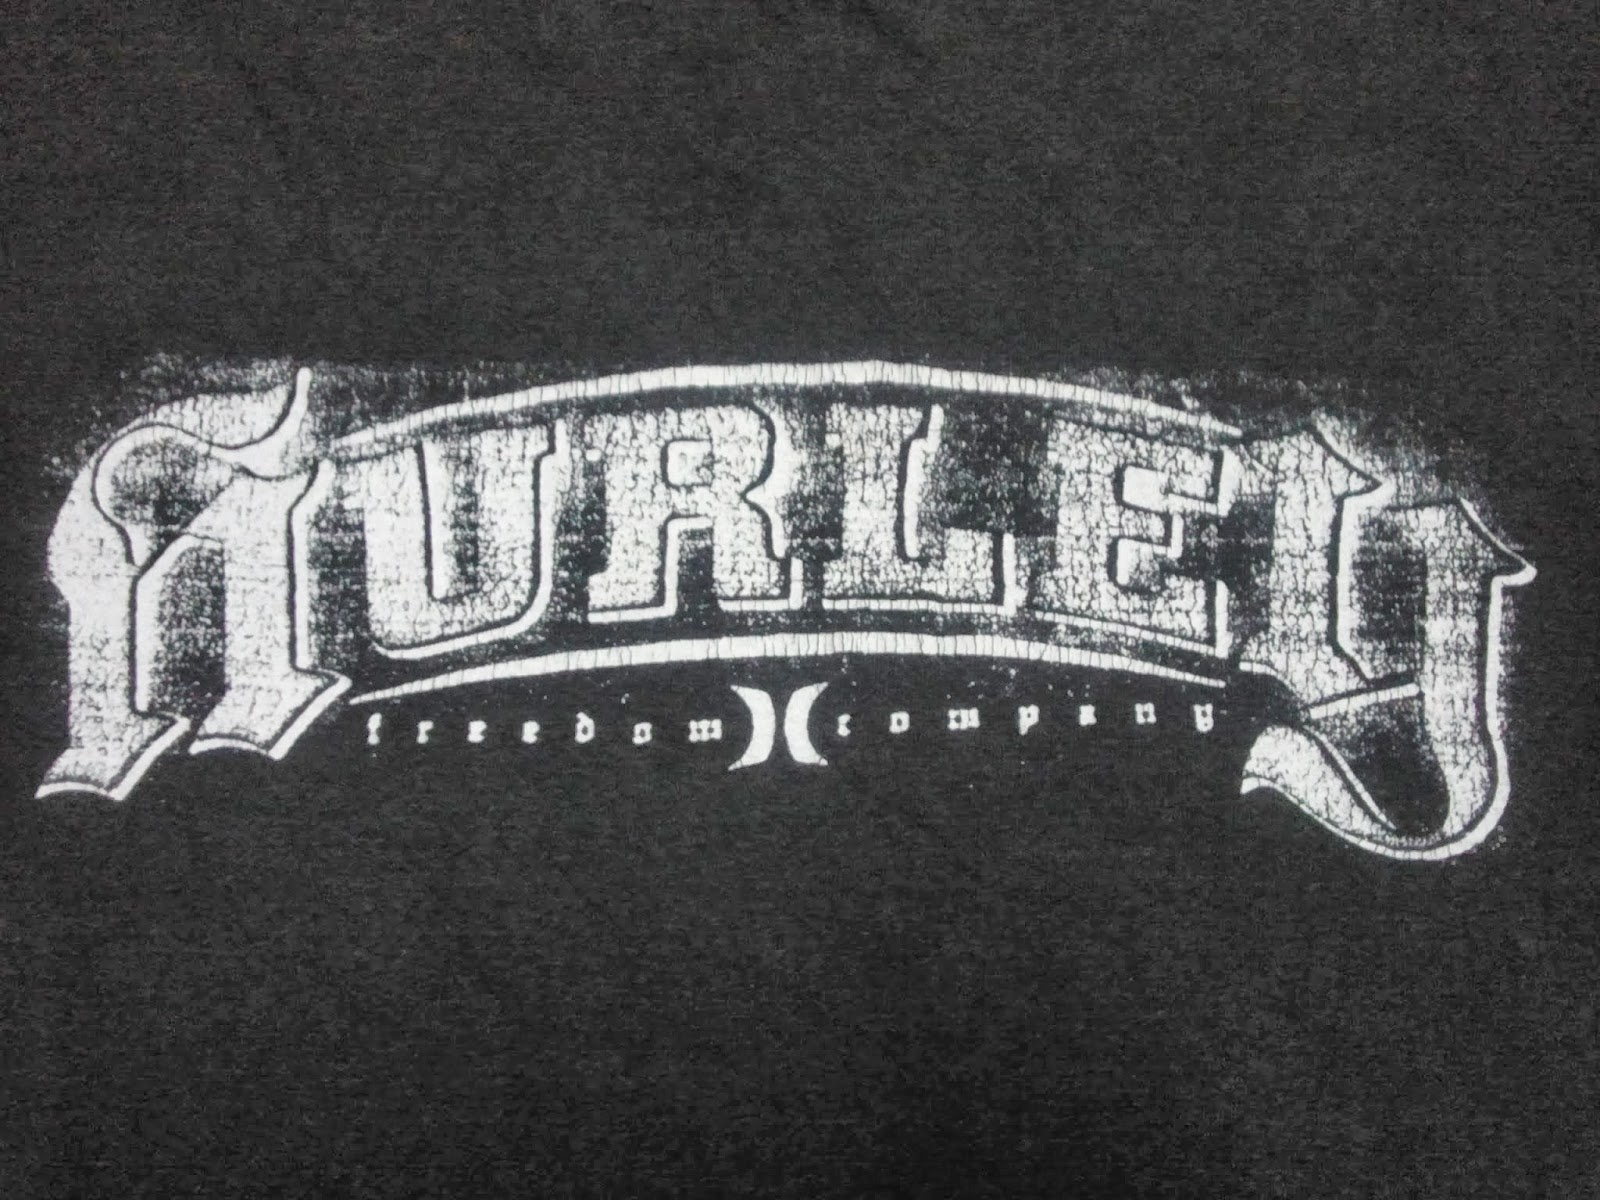 Black hurley t shirt -  Hurley T Shirt Price Sold Size Large Measurement W 22 L 28 Color Black Material 100 Cotton Condition 8 10